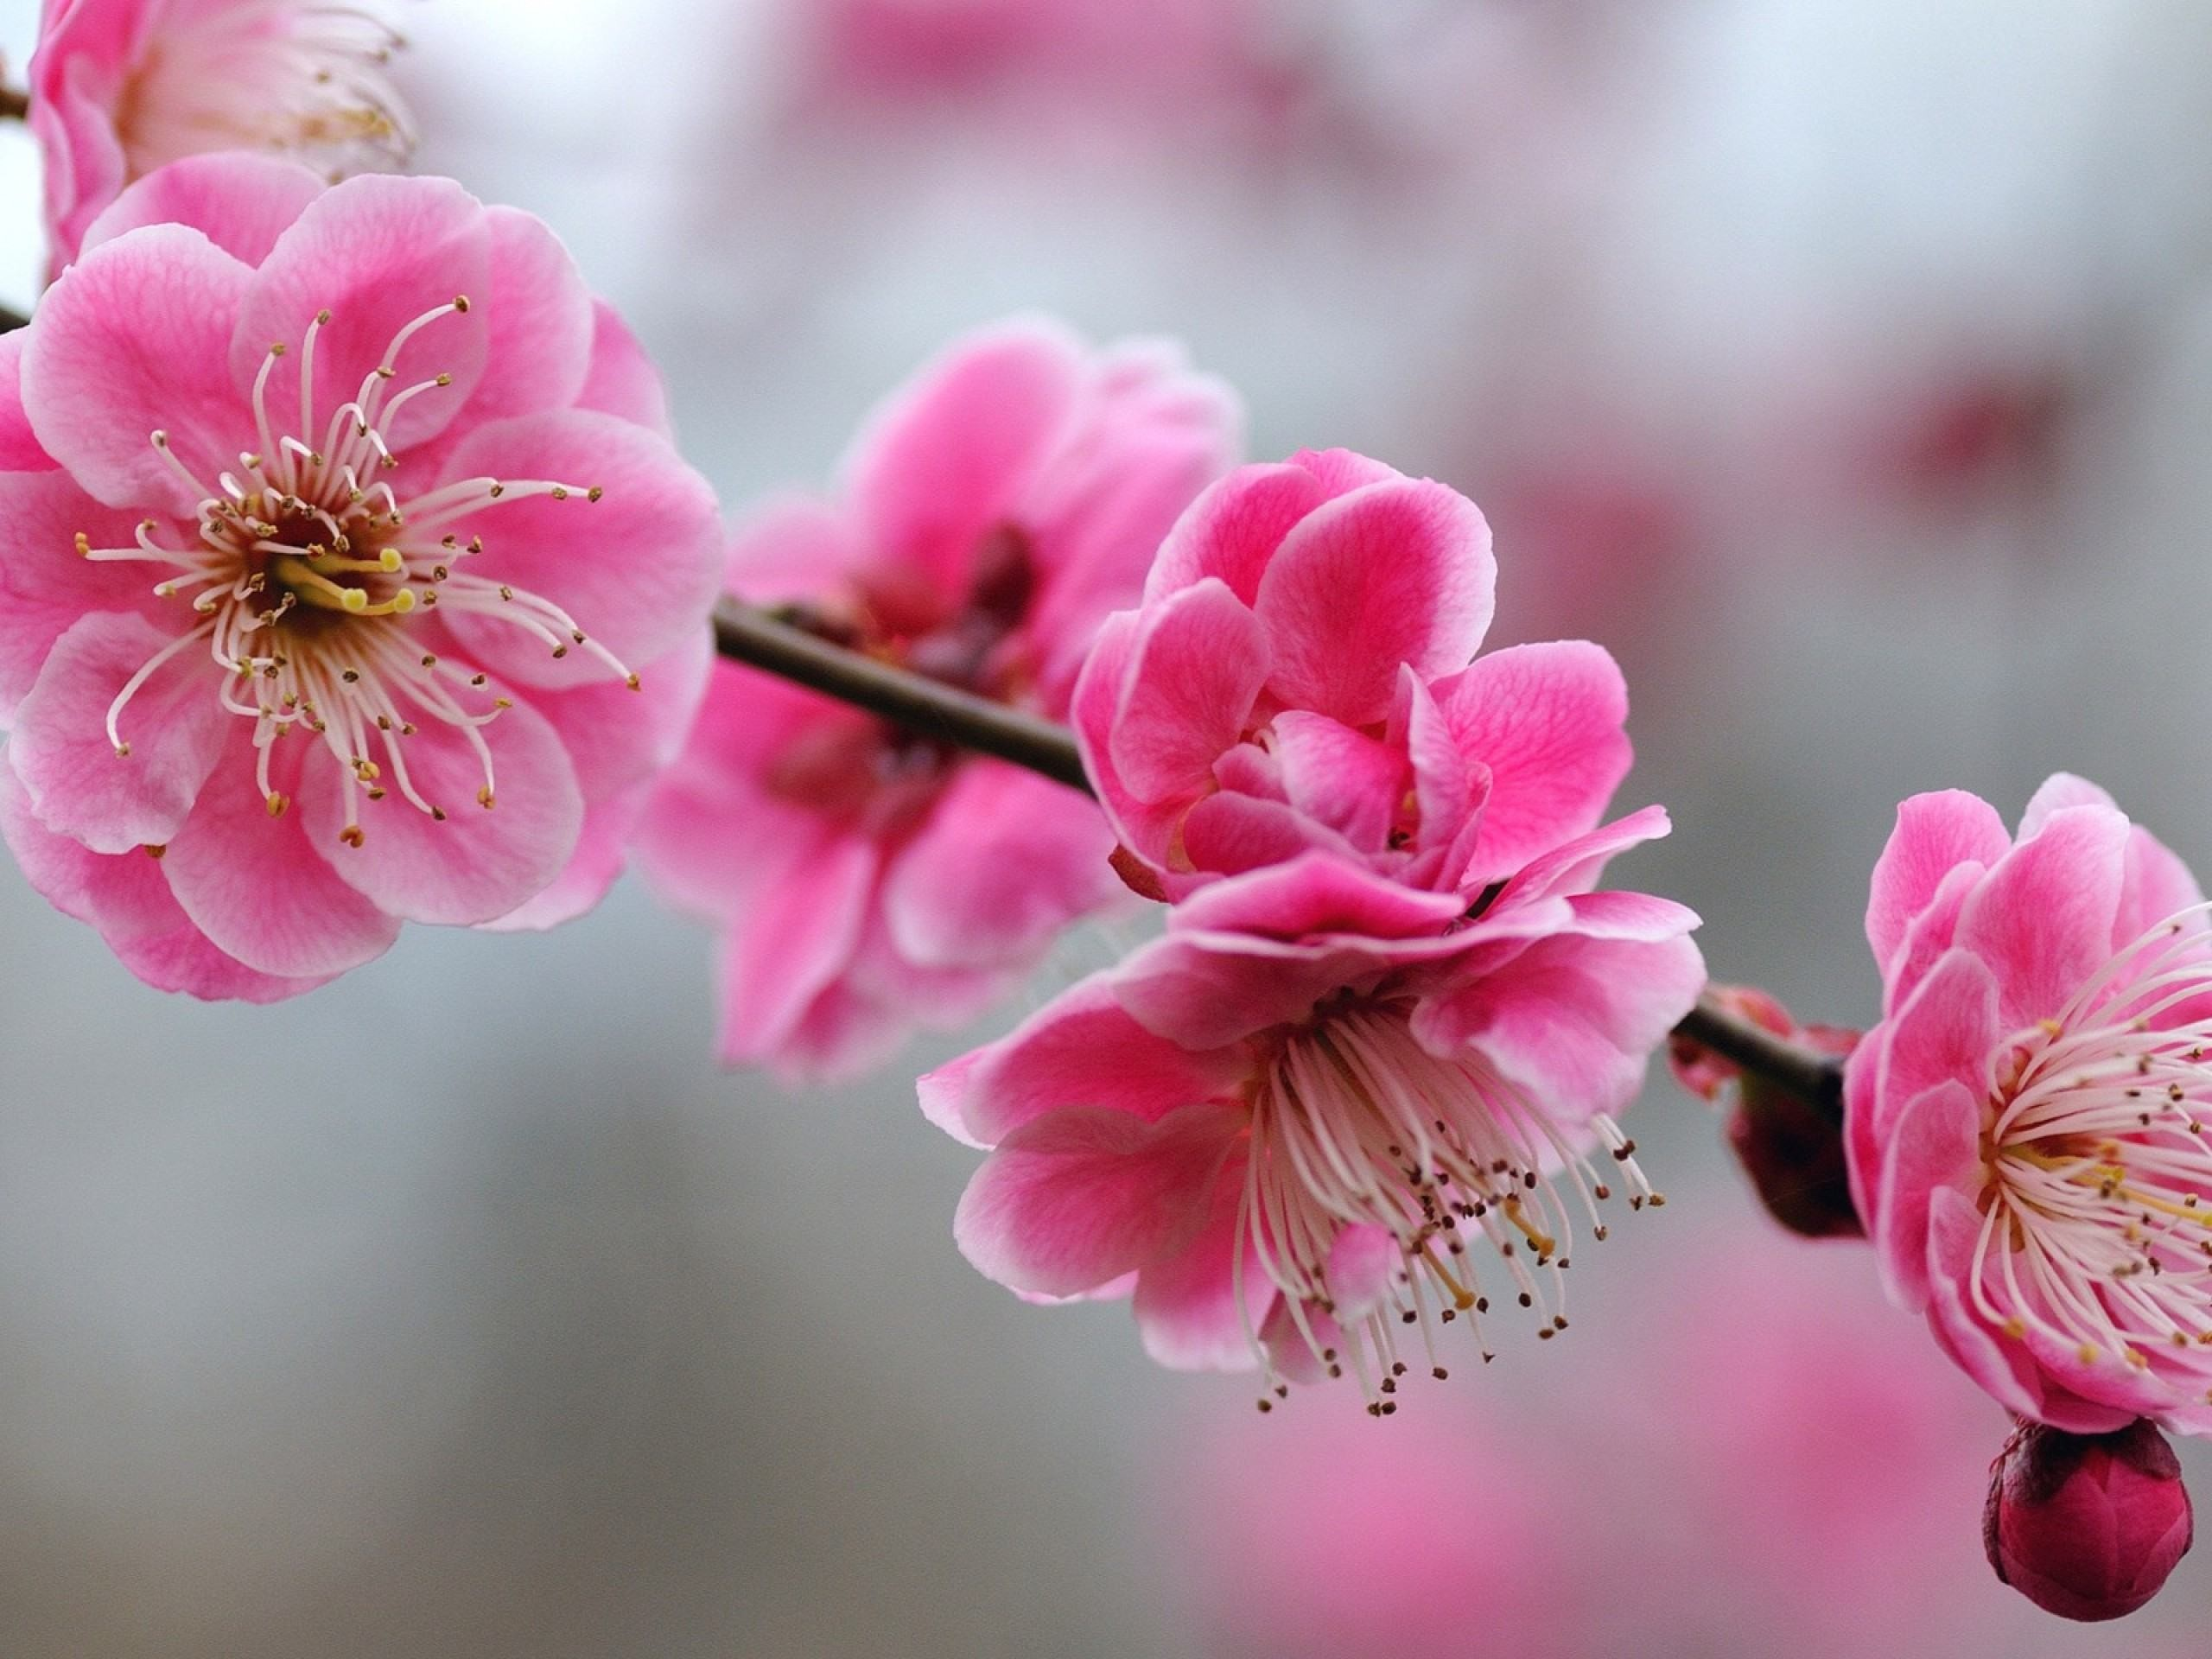 Cute Girly Backgrounds Pin pink hd wallpapers cute